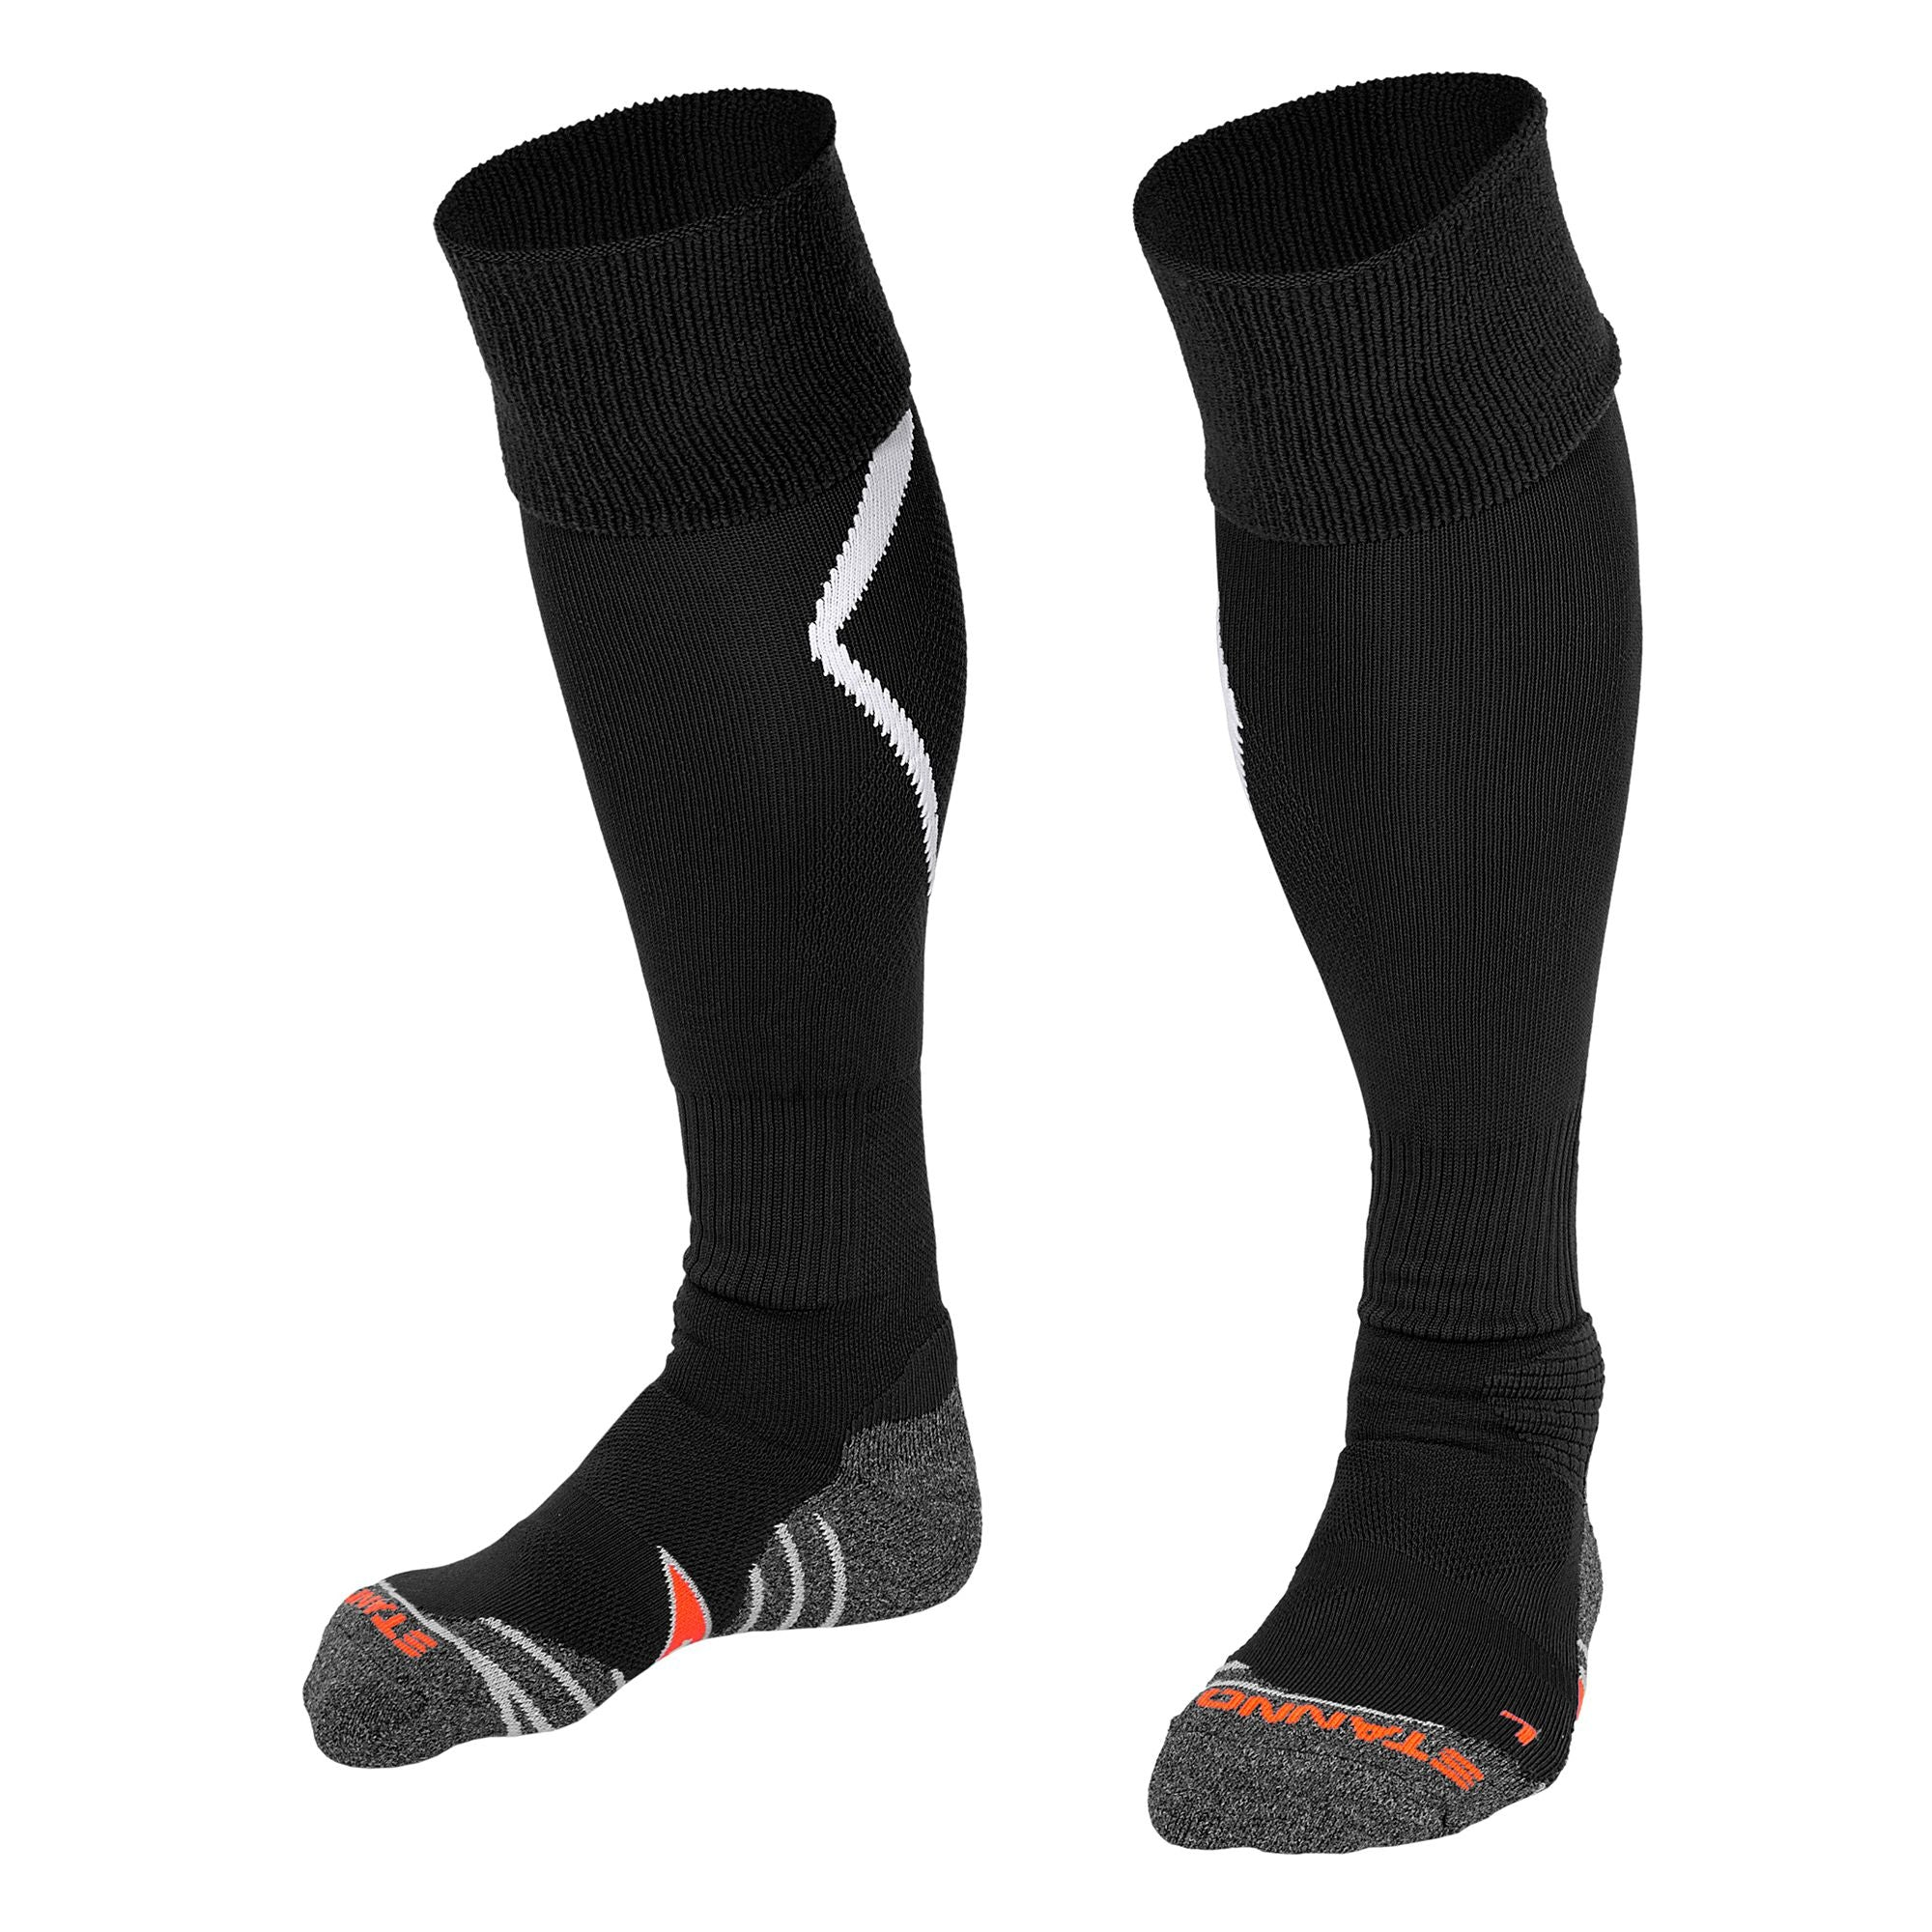 Stanno Forza socks in black with white arrow design on the calf.